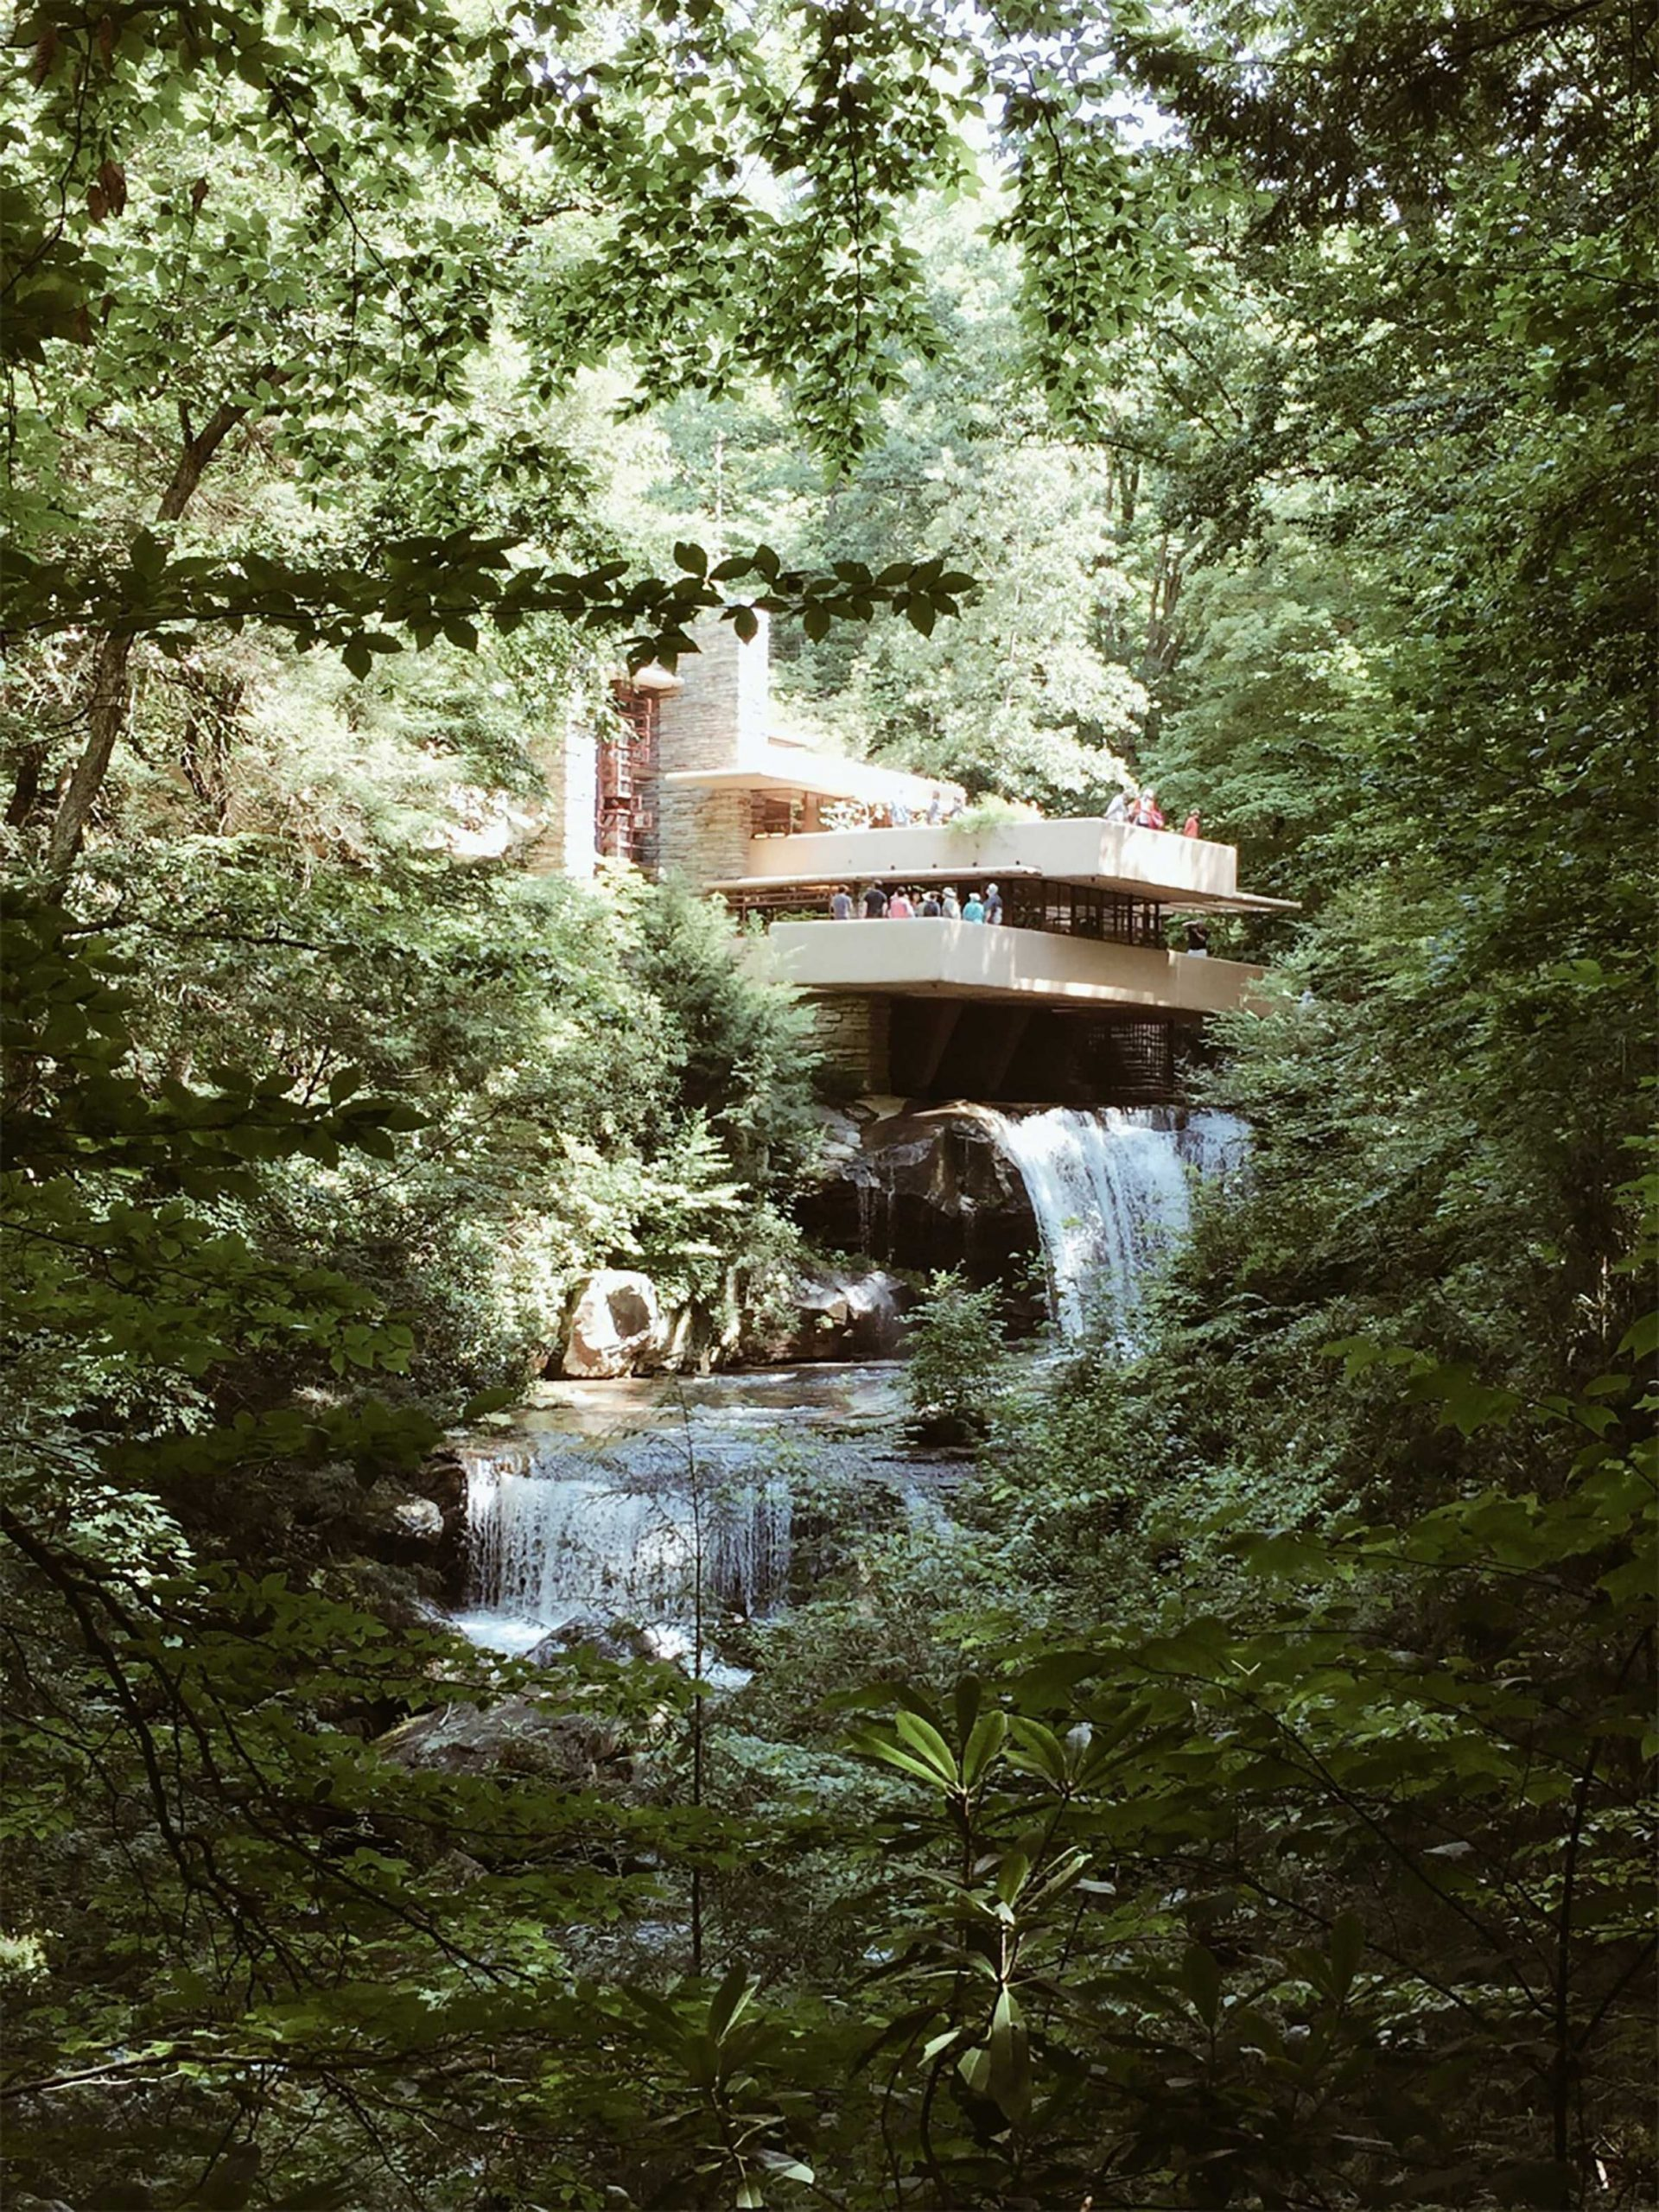 Wunschhaus-YourLegacy-Fallingwater-scaled